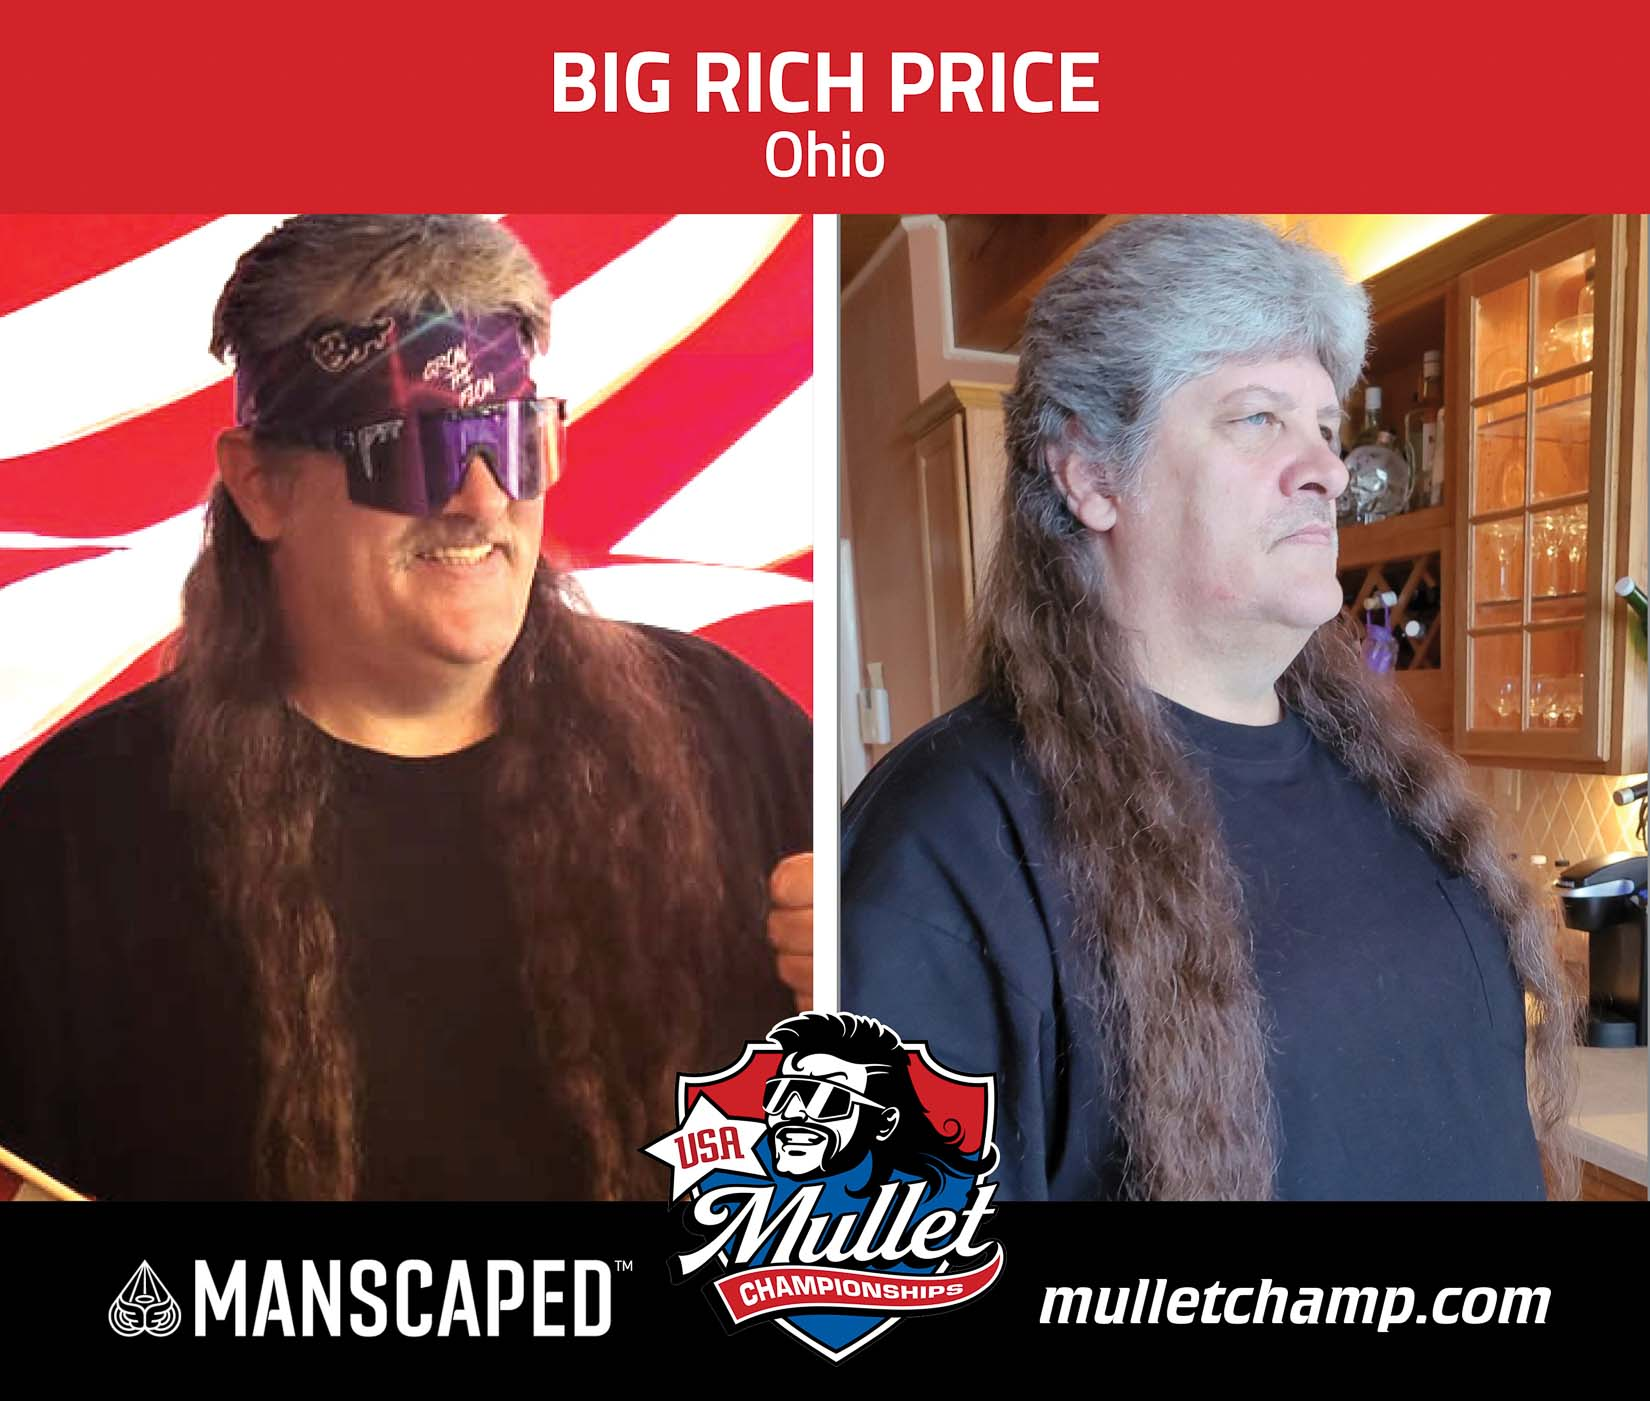 Mullet-Champ-USA-Mens-Open-Division-2021-Big-Rich-Price